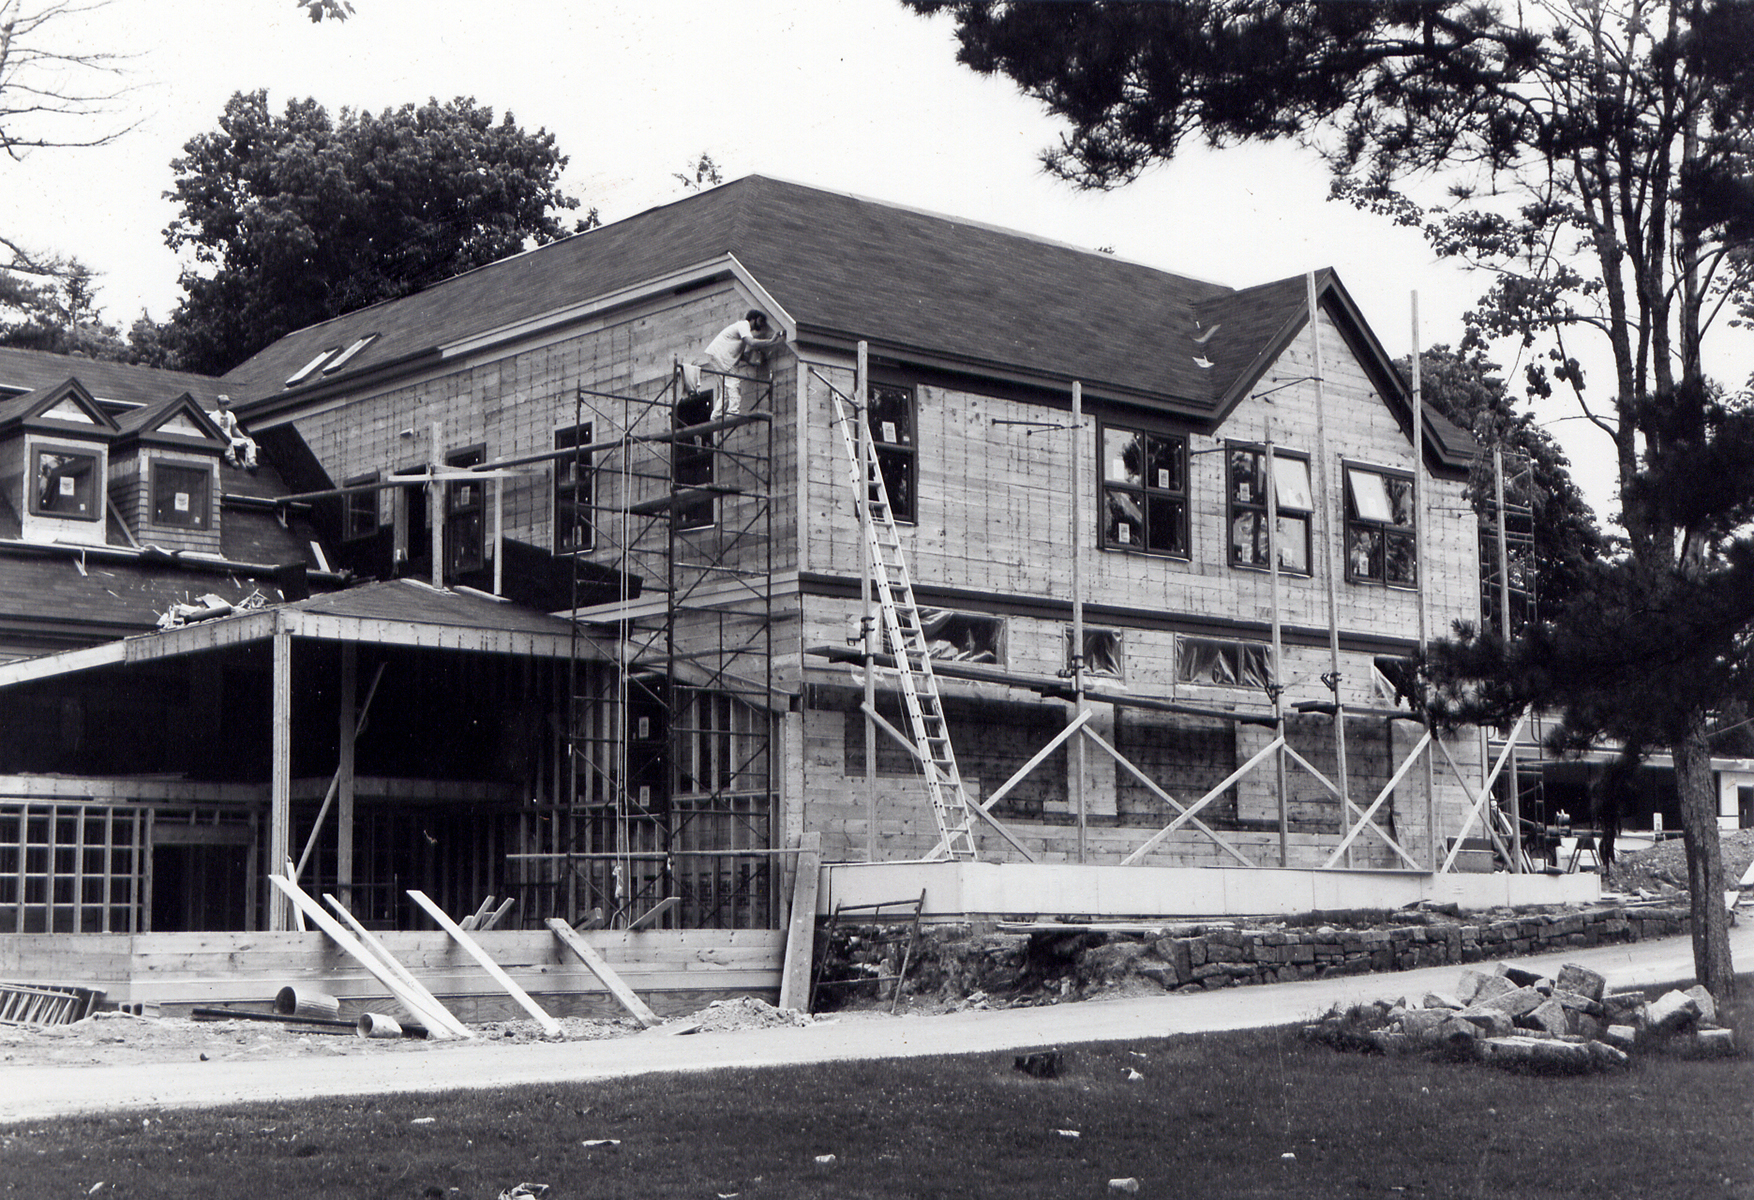 Arts & Sciences Building construction, photograph, 1985